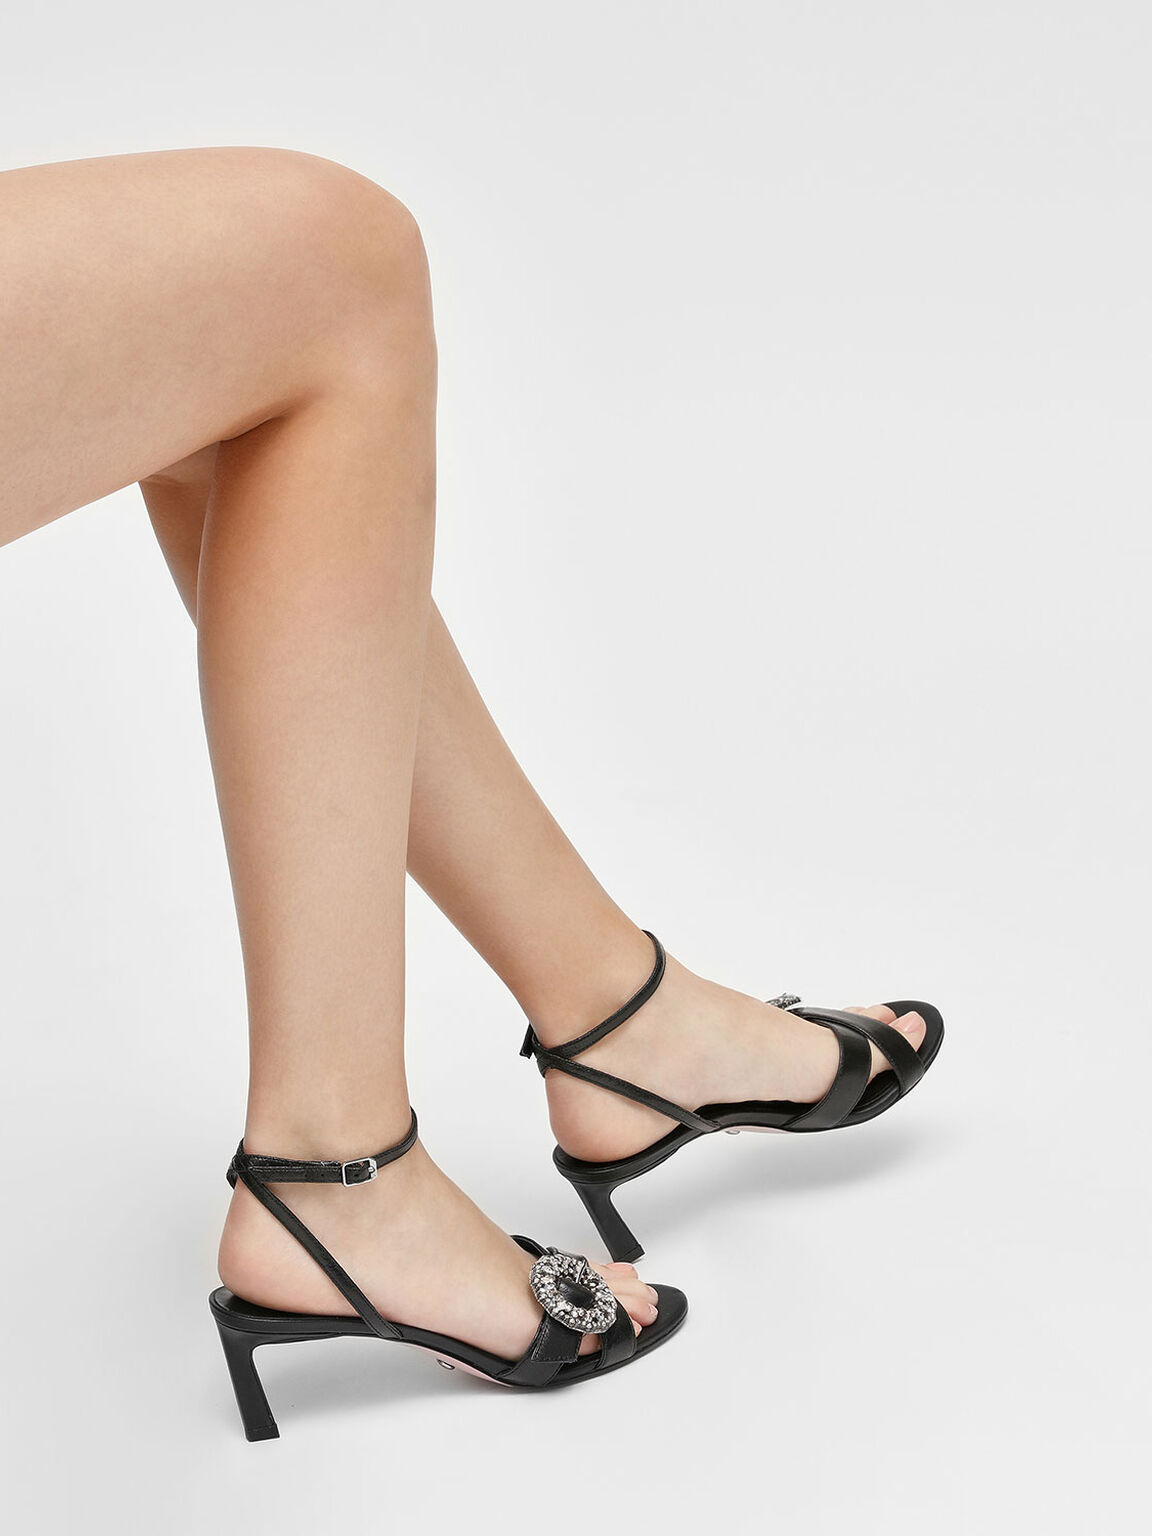 Crushed Gem Effect Buckle Leather Sandals, Black, hi-res